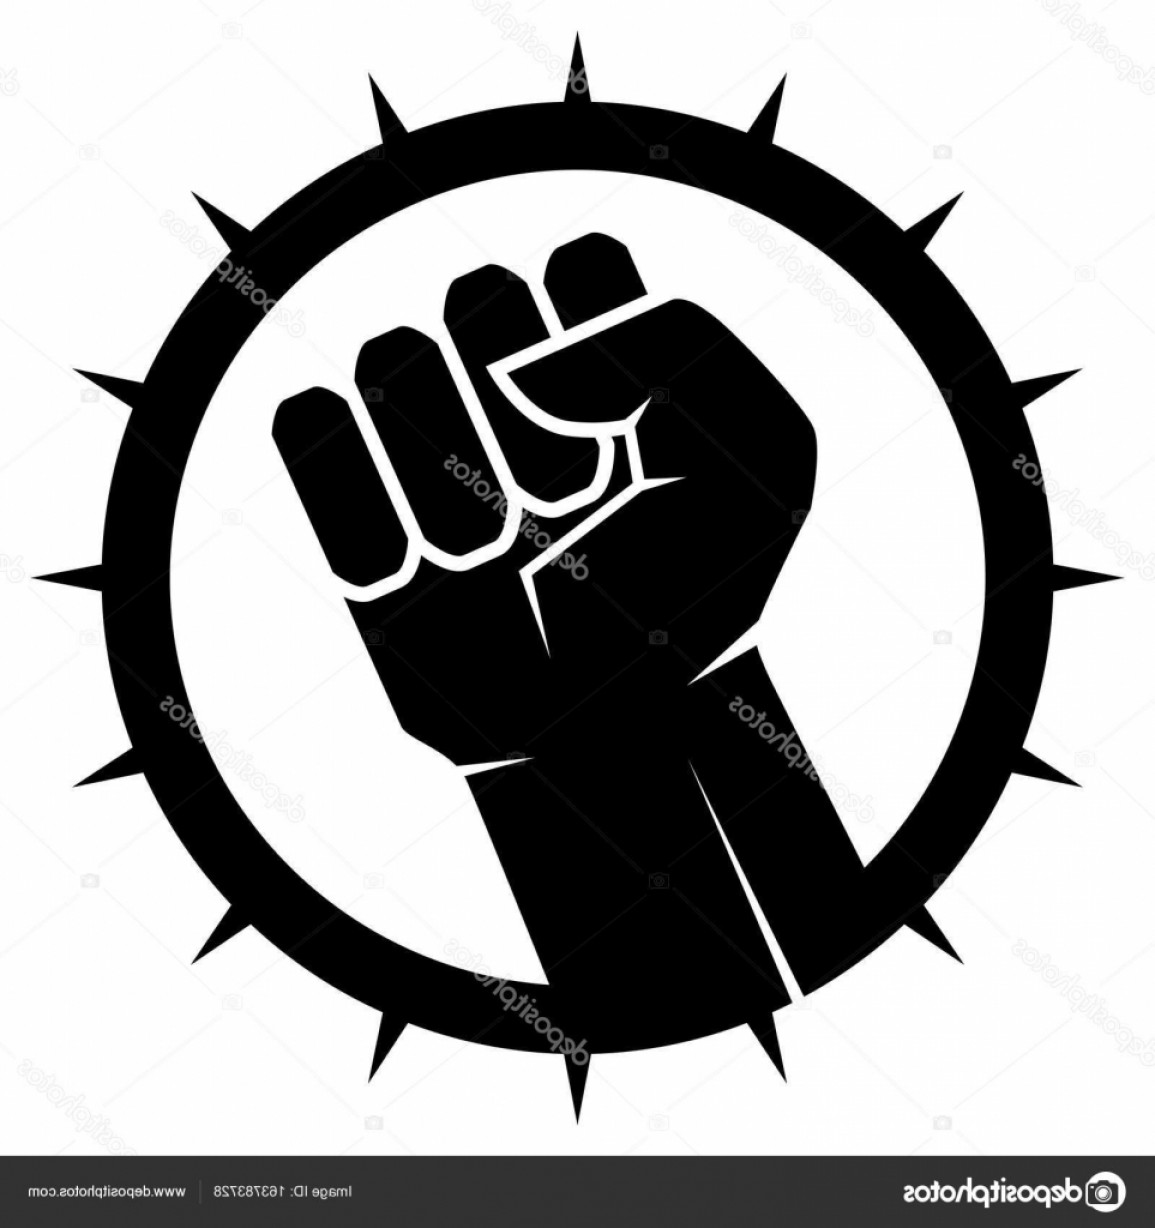 Black Power Fist Vector: Stock Illustration Clenched Fist Vector Fist Icon